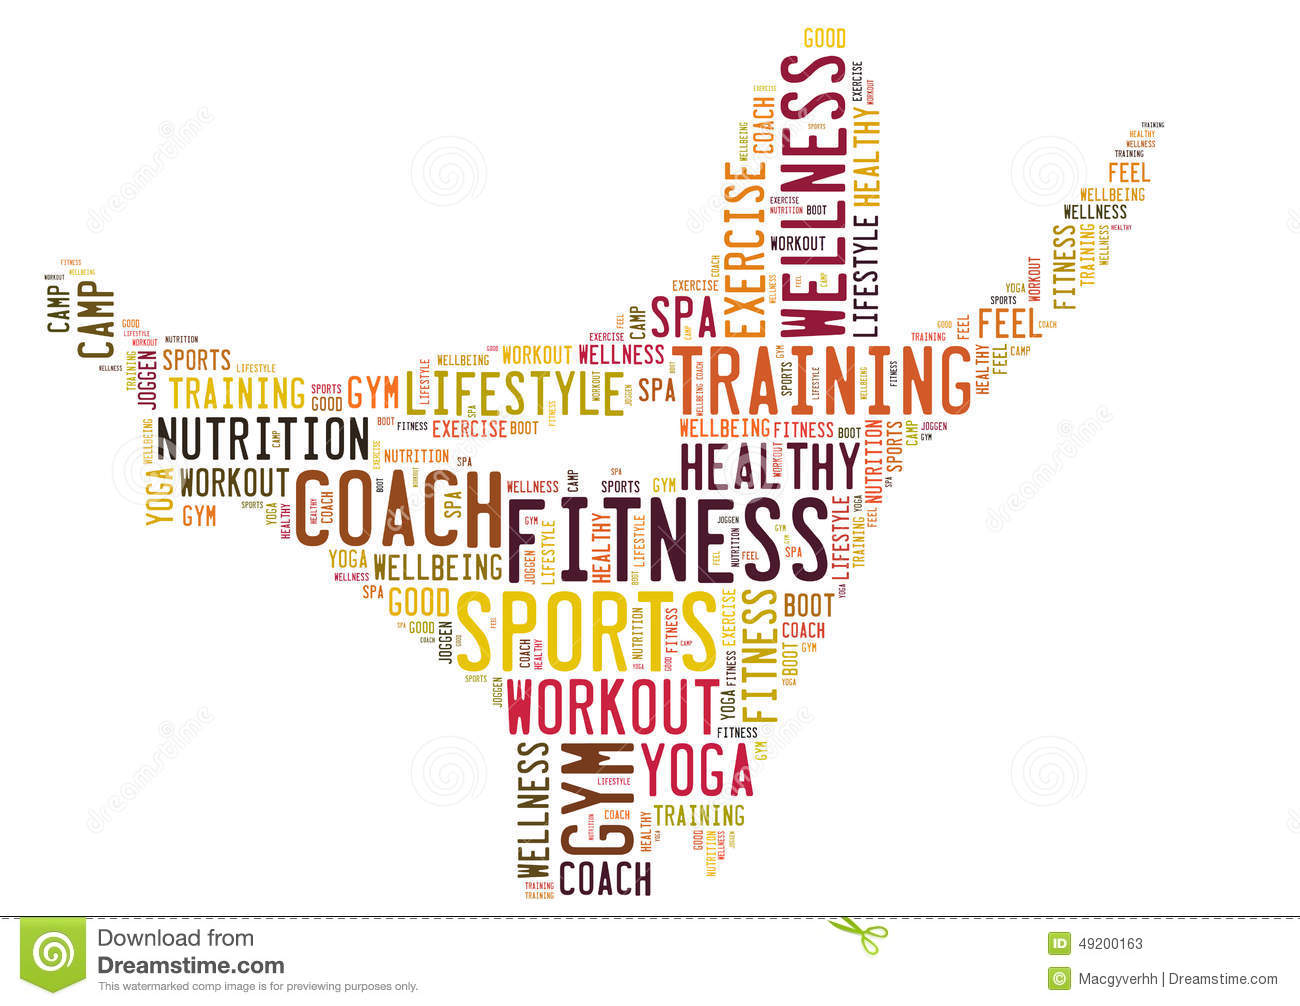 edf43baca4bcb Fitness sports and wellbeing Lifestyle word cloud. Designers Also Selected  These Stock Illustrations